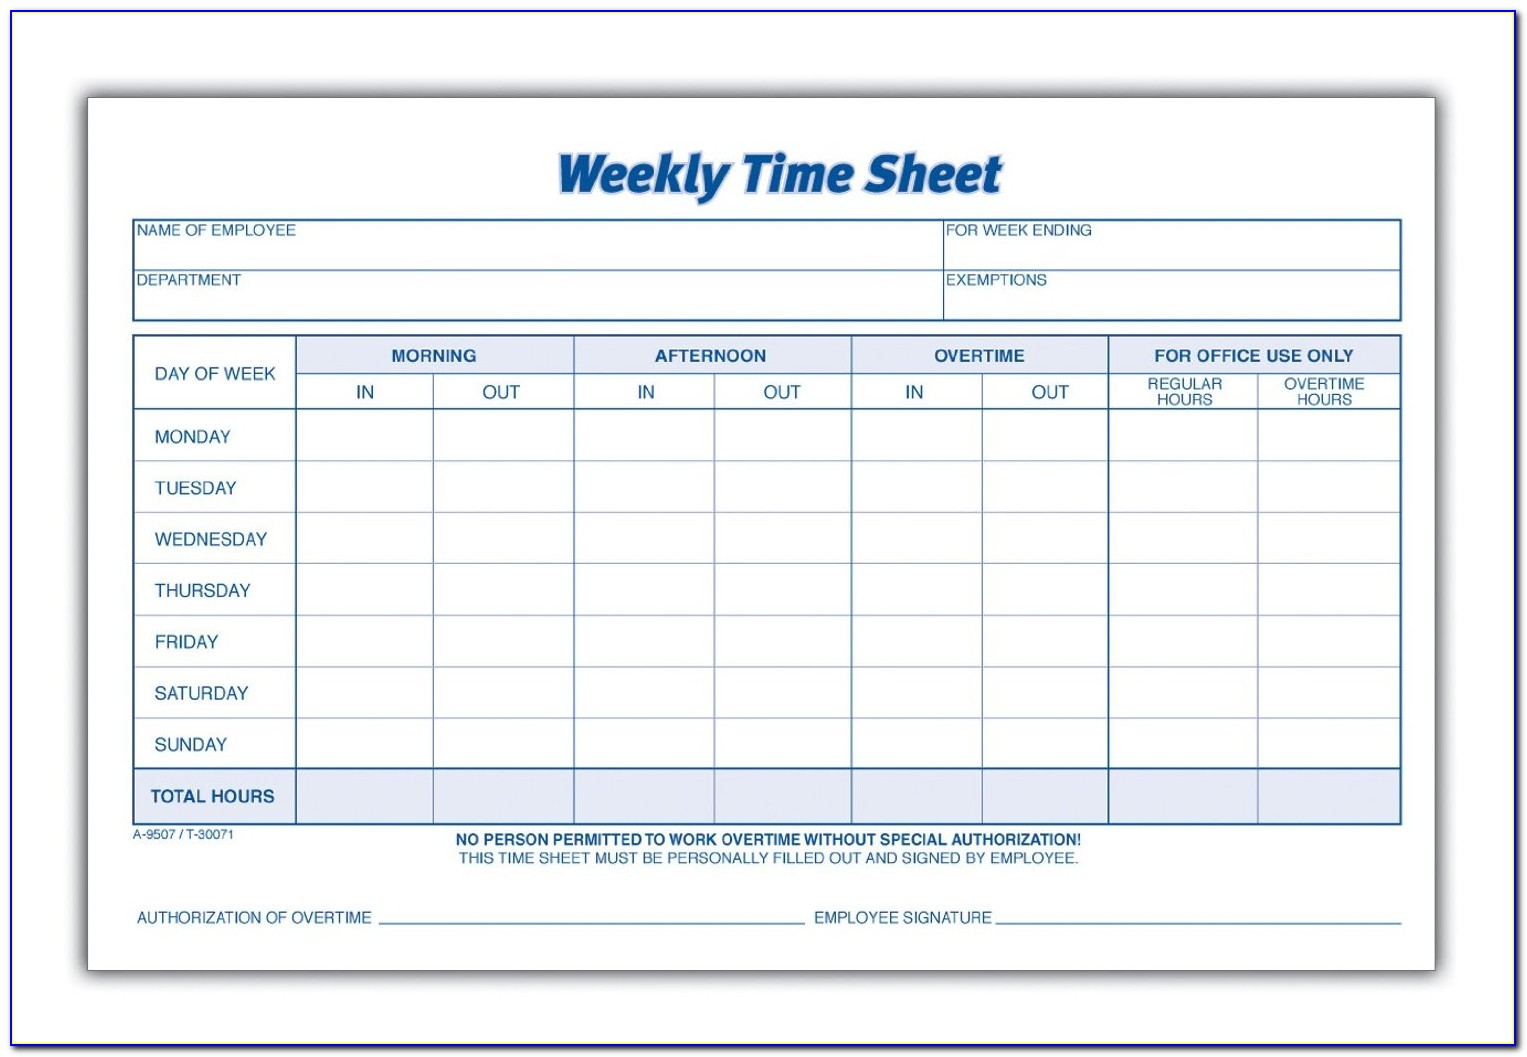 Quickbooks Online Timesheet Import Template